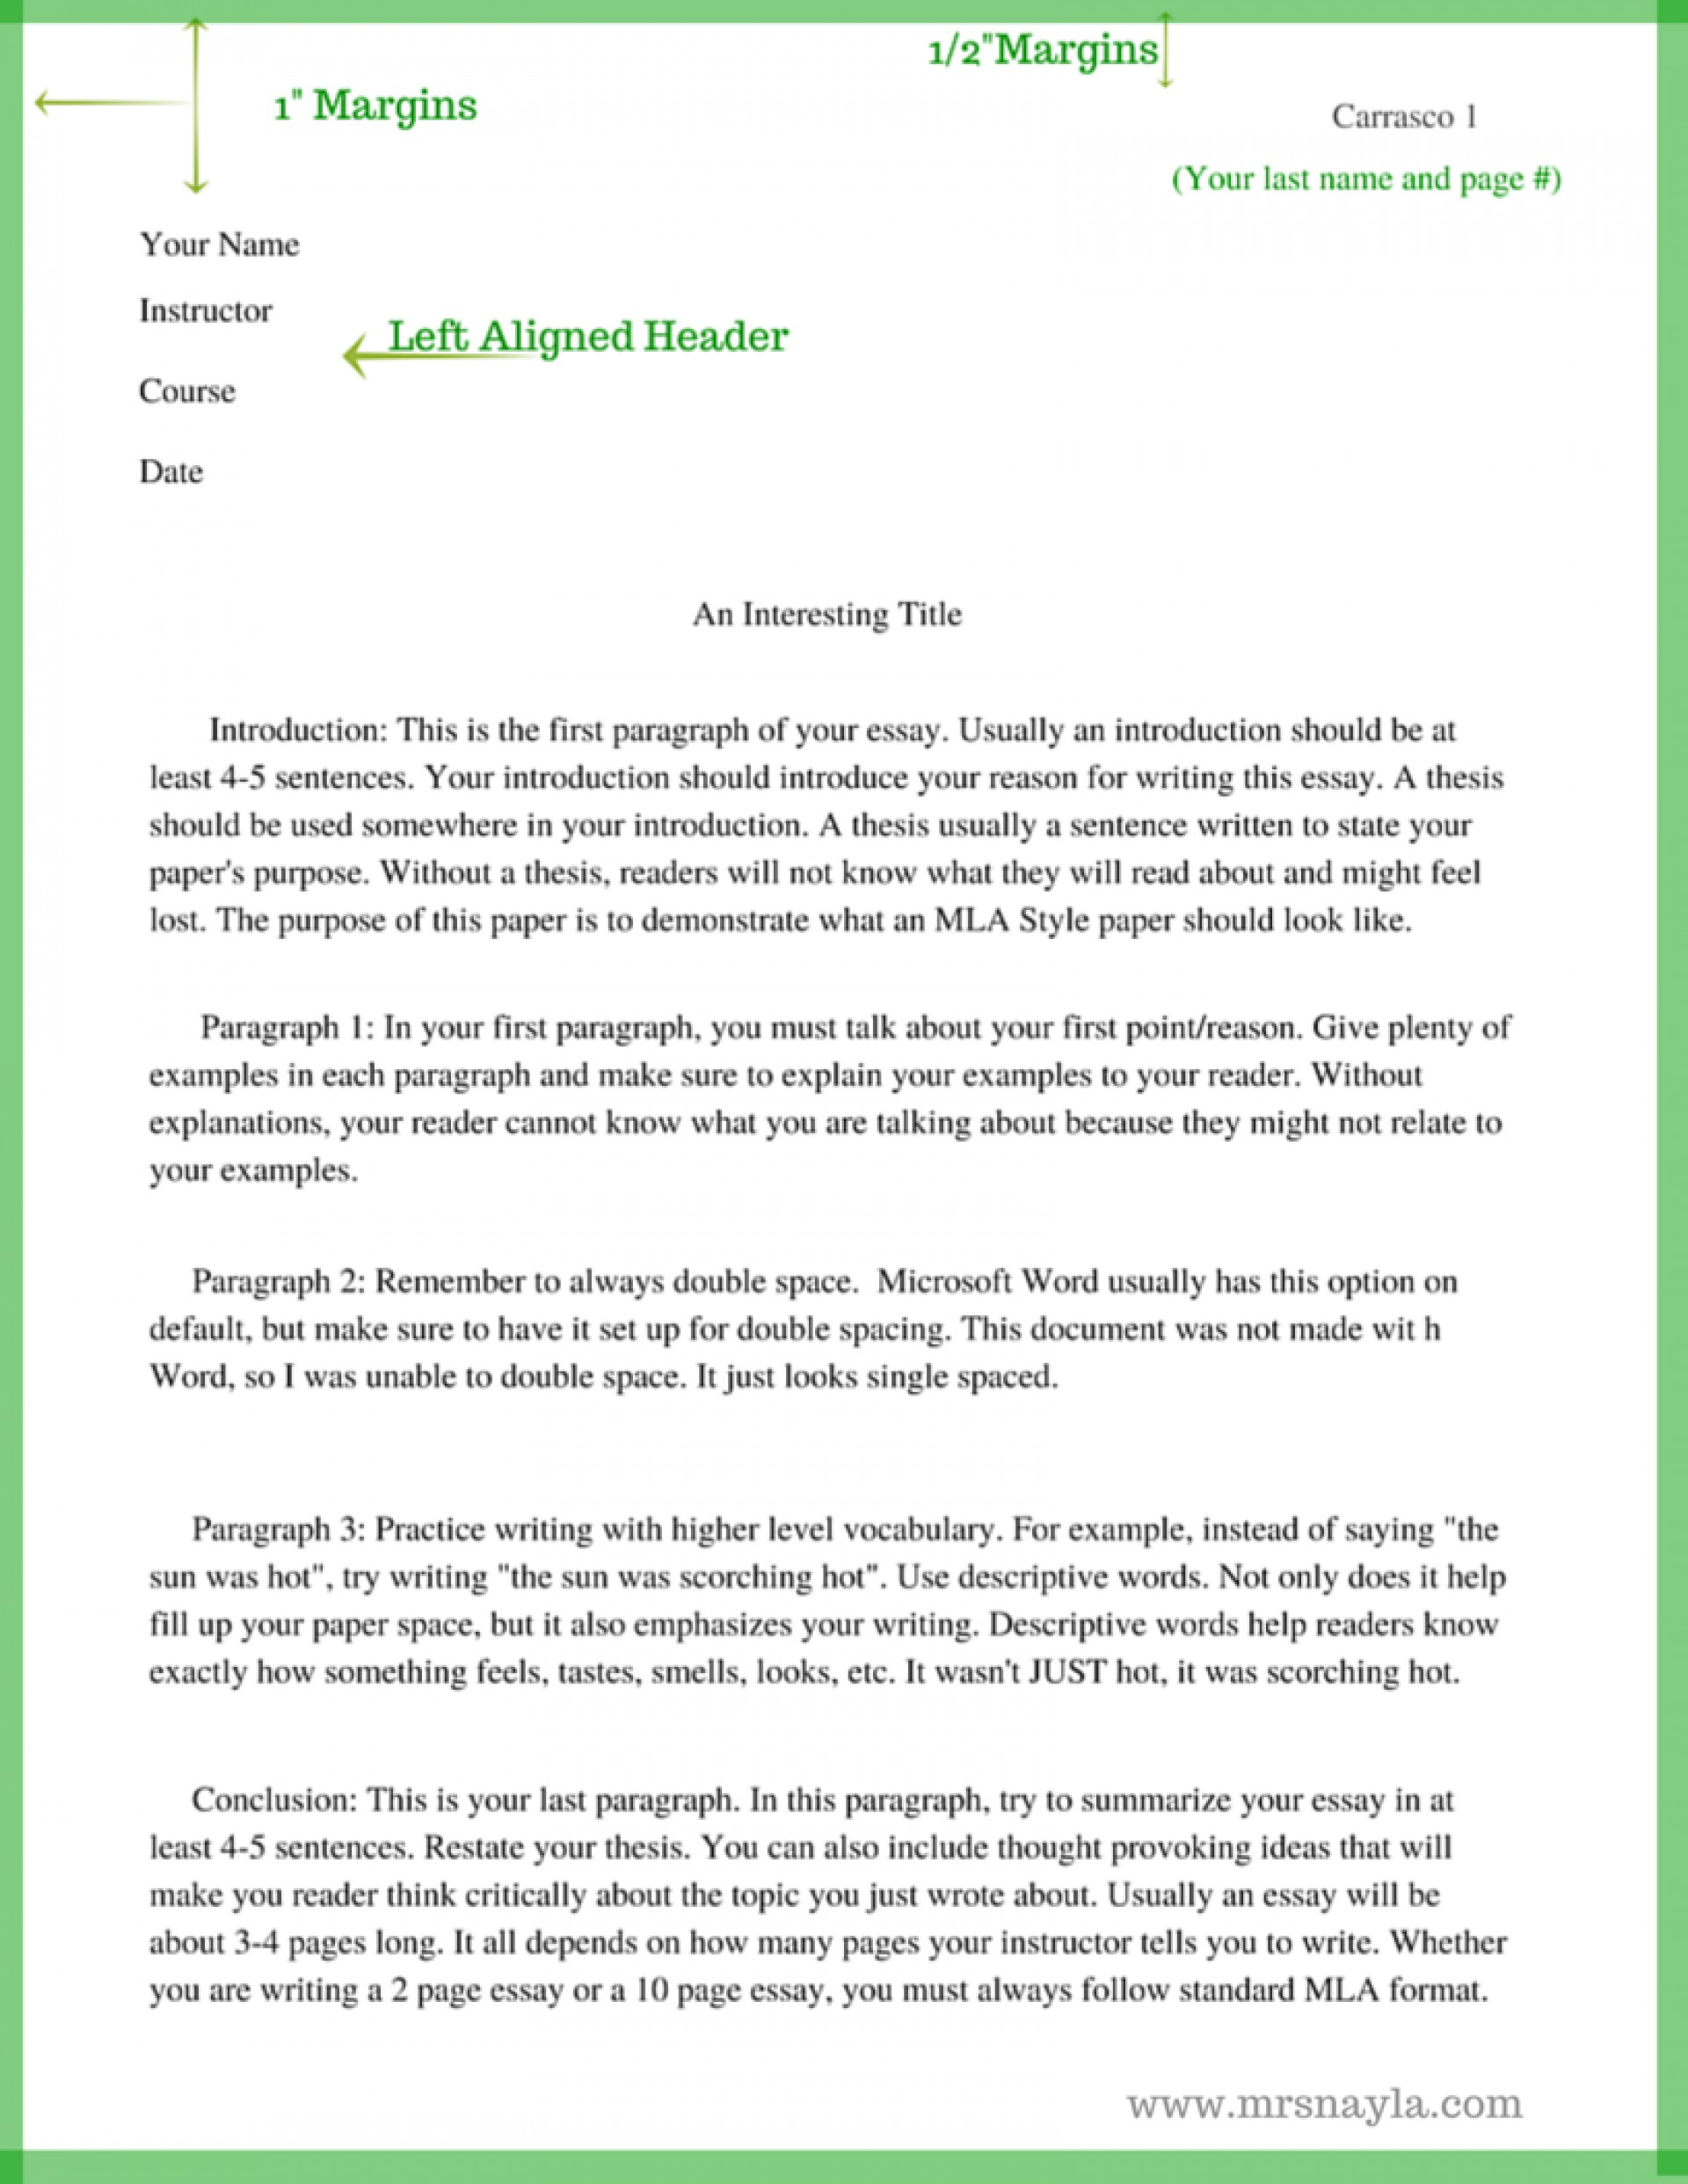 015 Essay Example Mla Style Sample Format Www Mrsnayla Com Writing Pinterest English Best Outline For College 1920